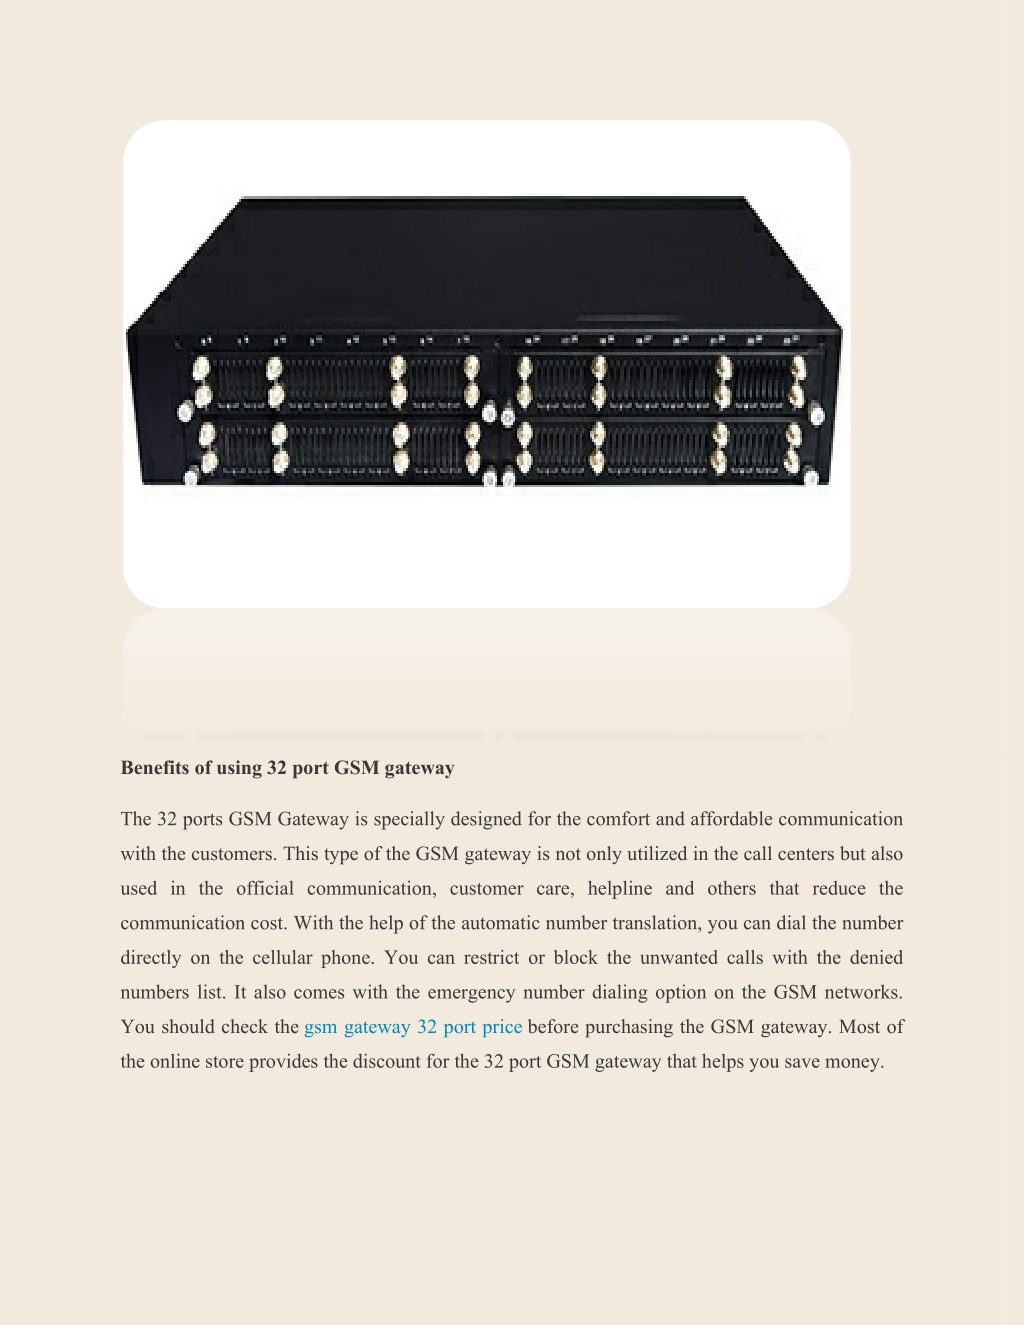 PPT - Why Should You Use GSM Gateway 32 Port In Call Center